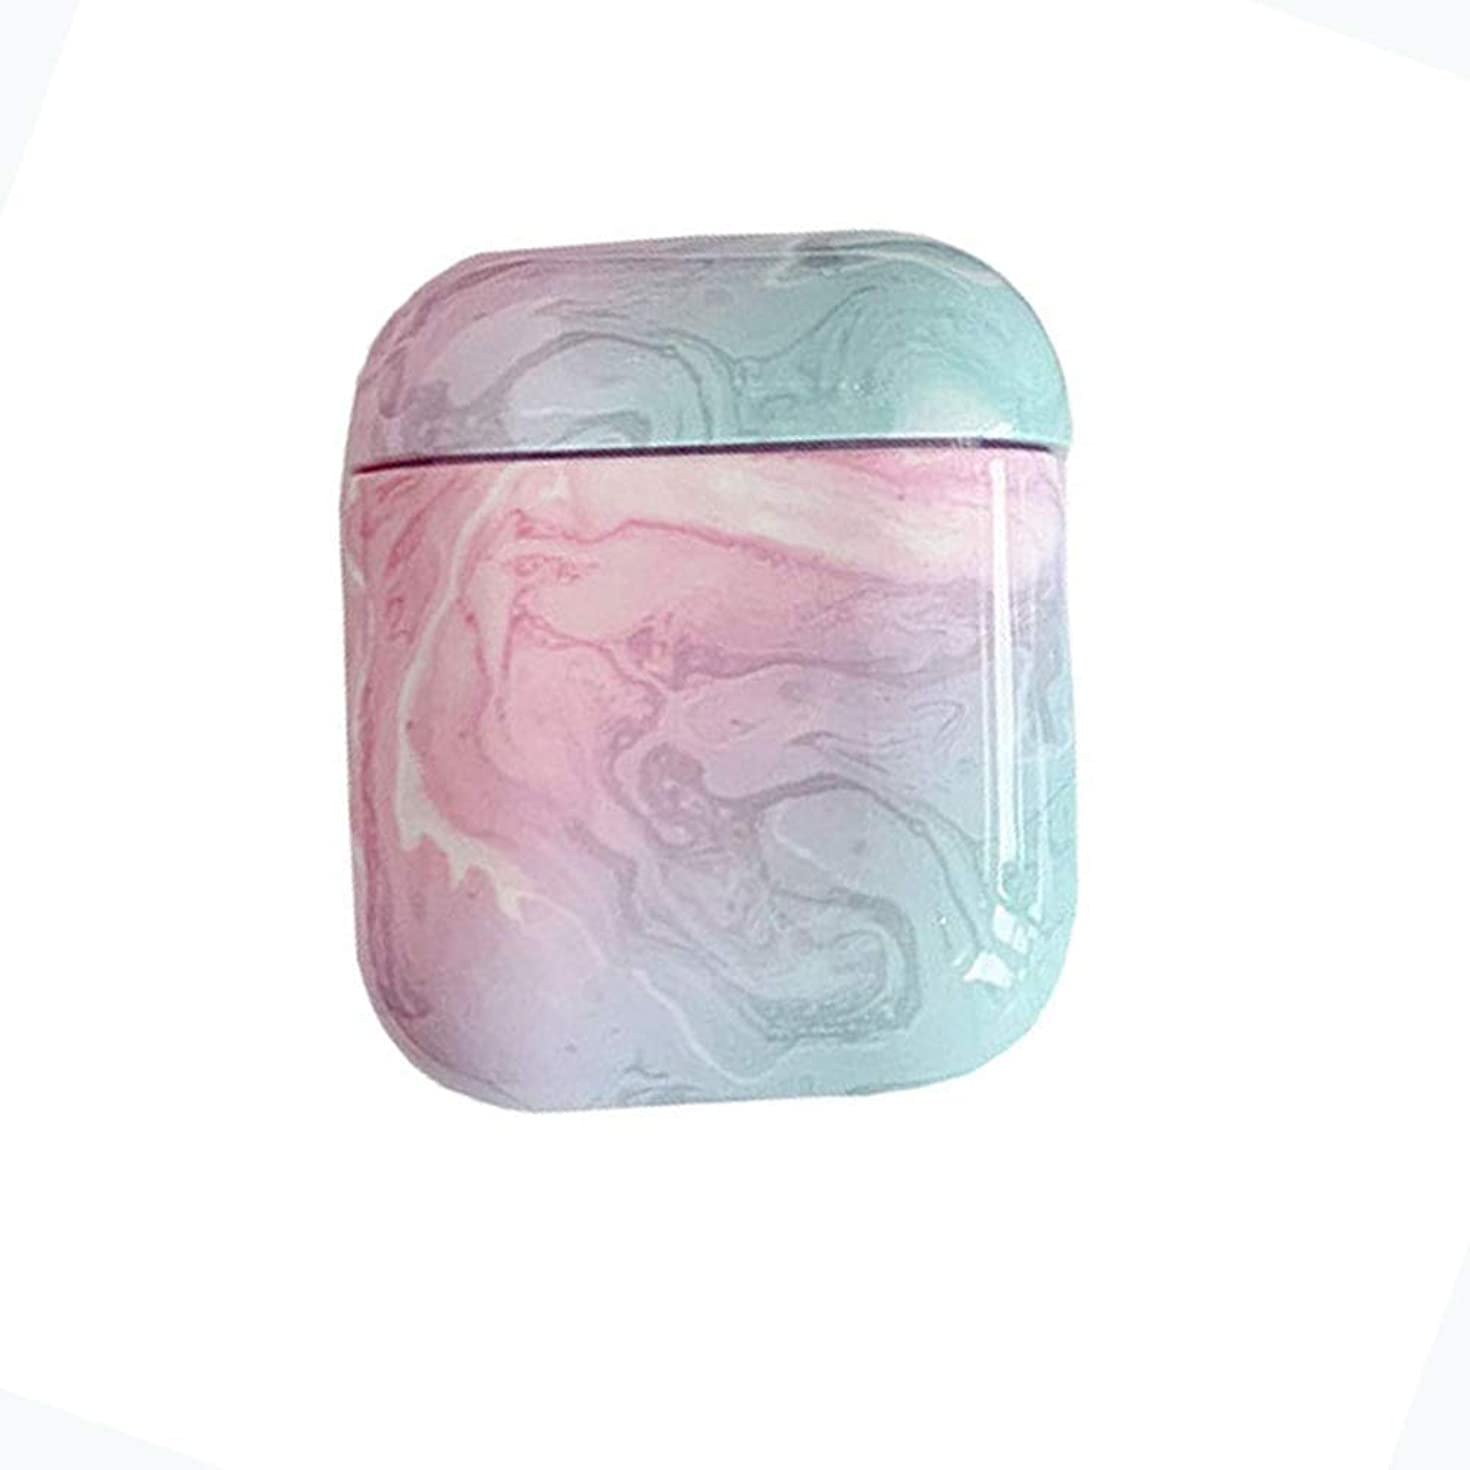 AirPods Case Protective, Mangix Marble Design PC [Support Wireless Charging] Dustproof Cover and Case for Apple AirPods (Marble/Pink)